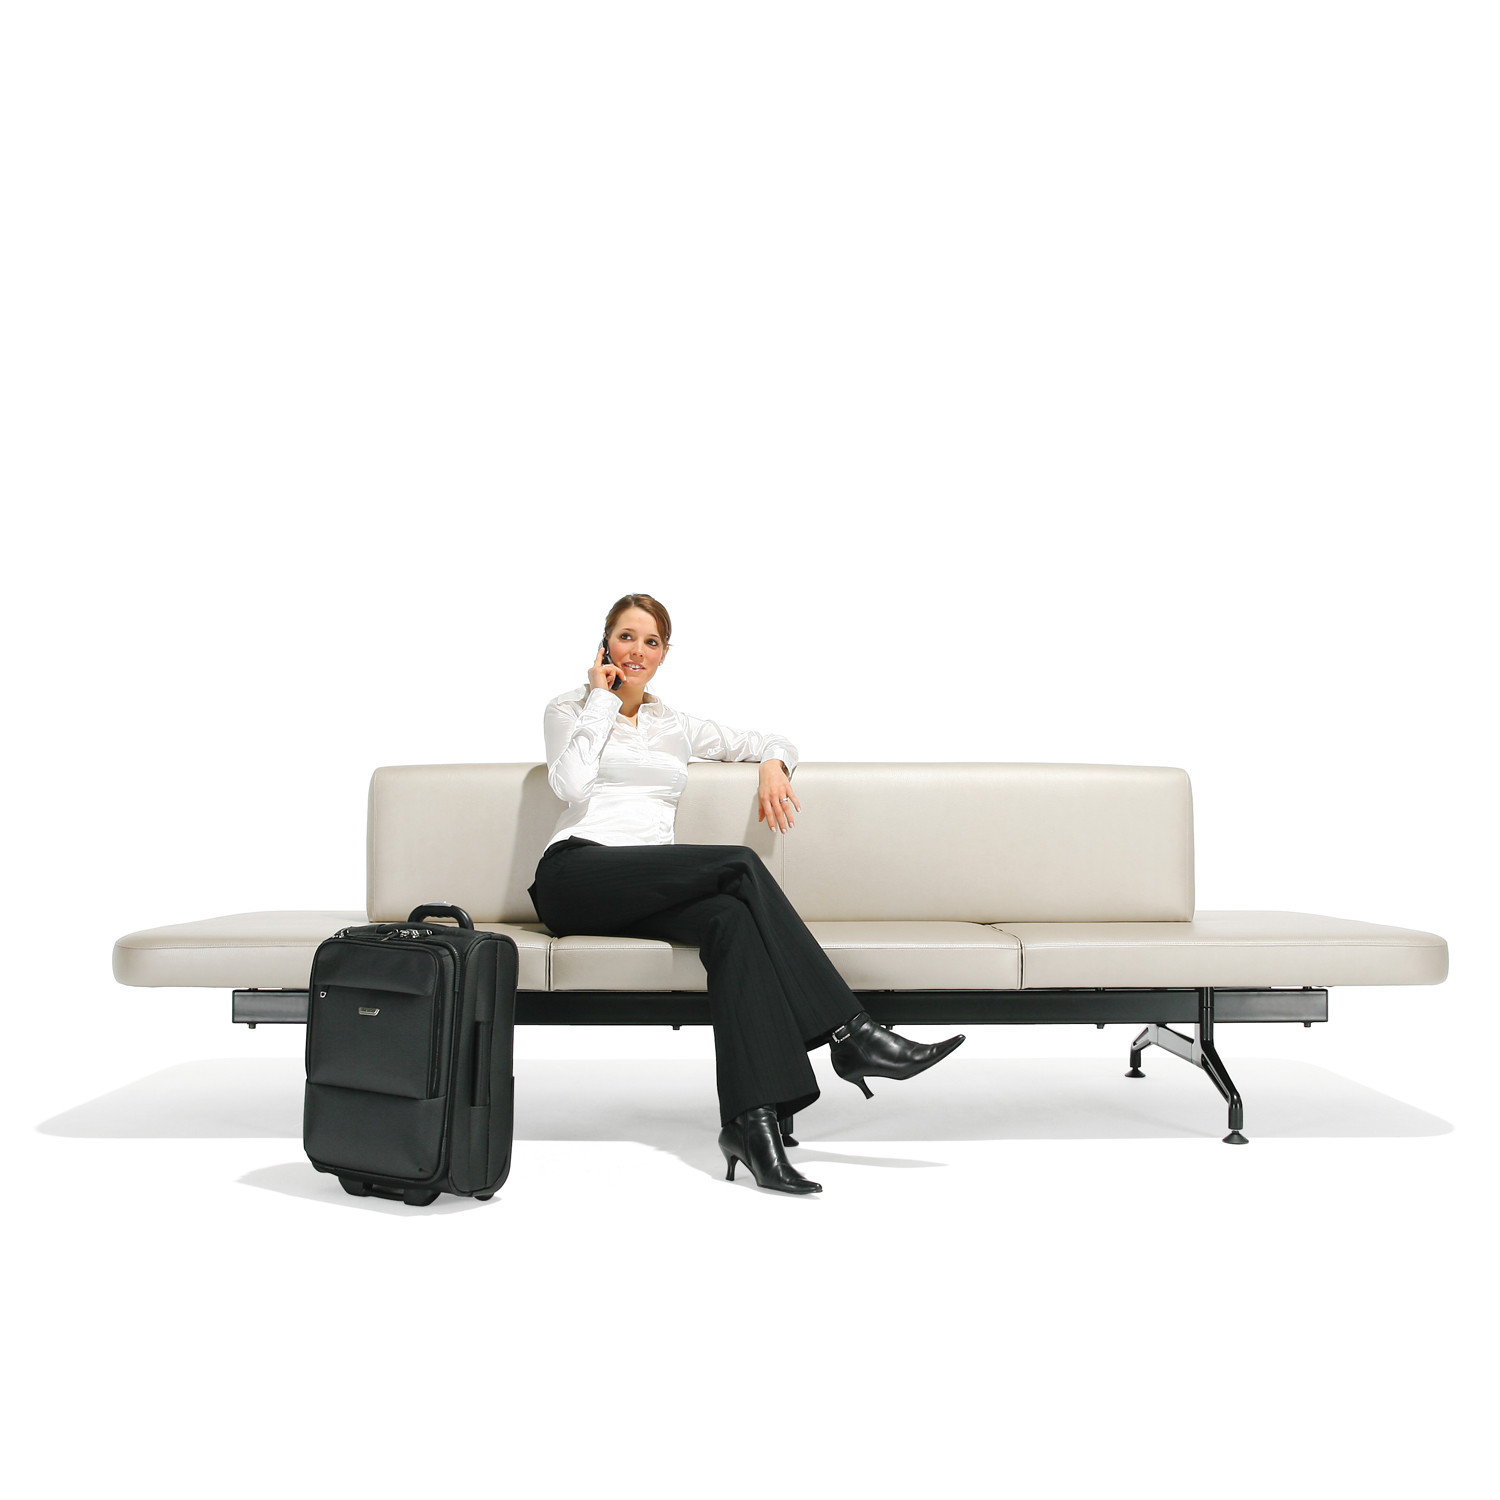 7300 Airport Terminal Bench by Kusch+Co